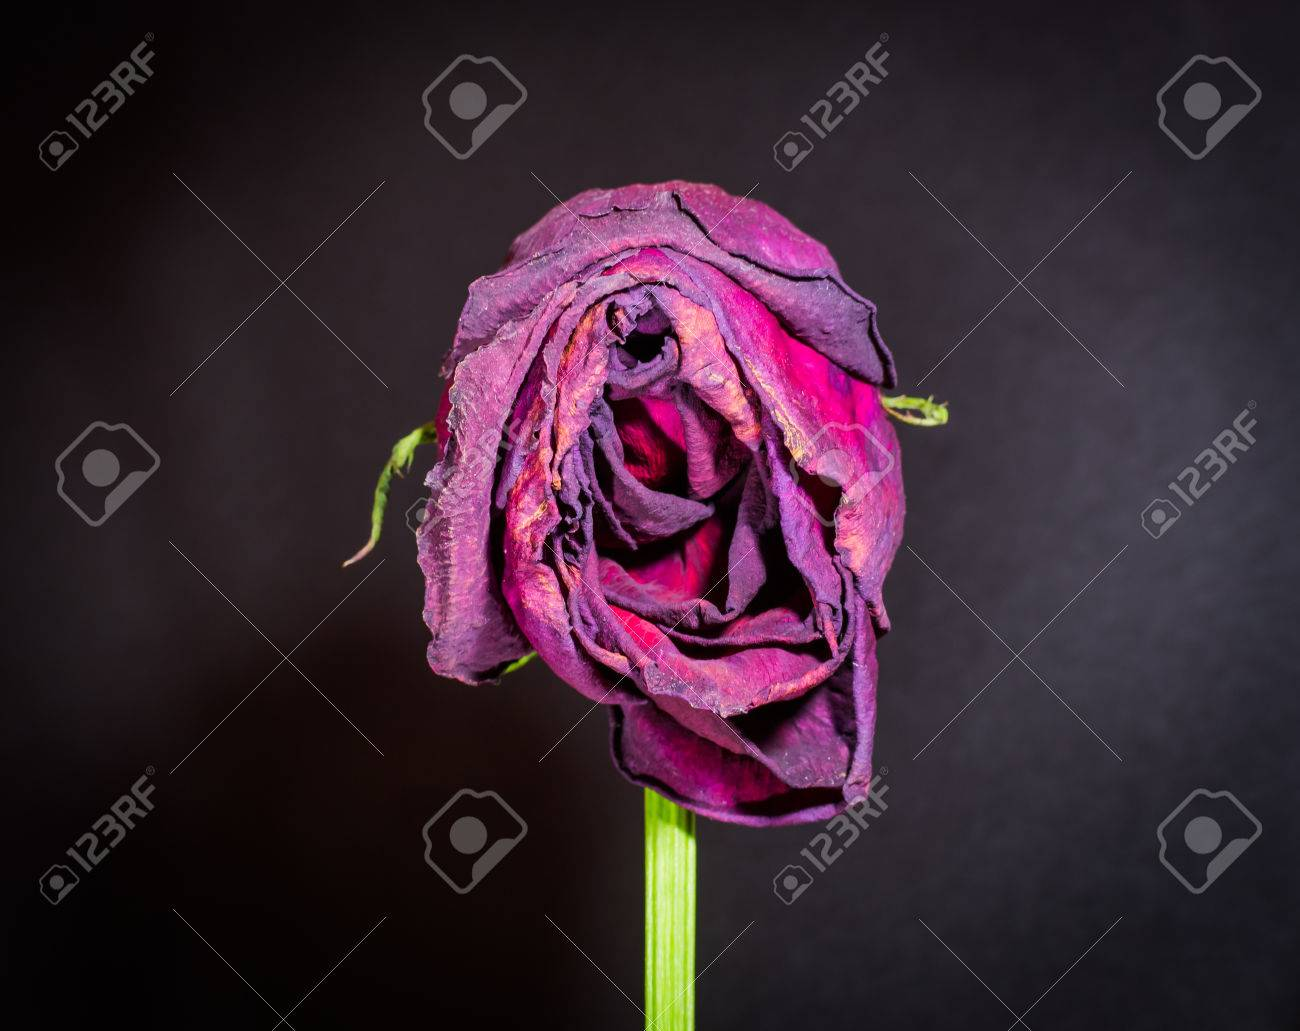 Closeup of a vertical dying rose with wilting petals on black background - 40299646